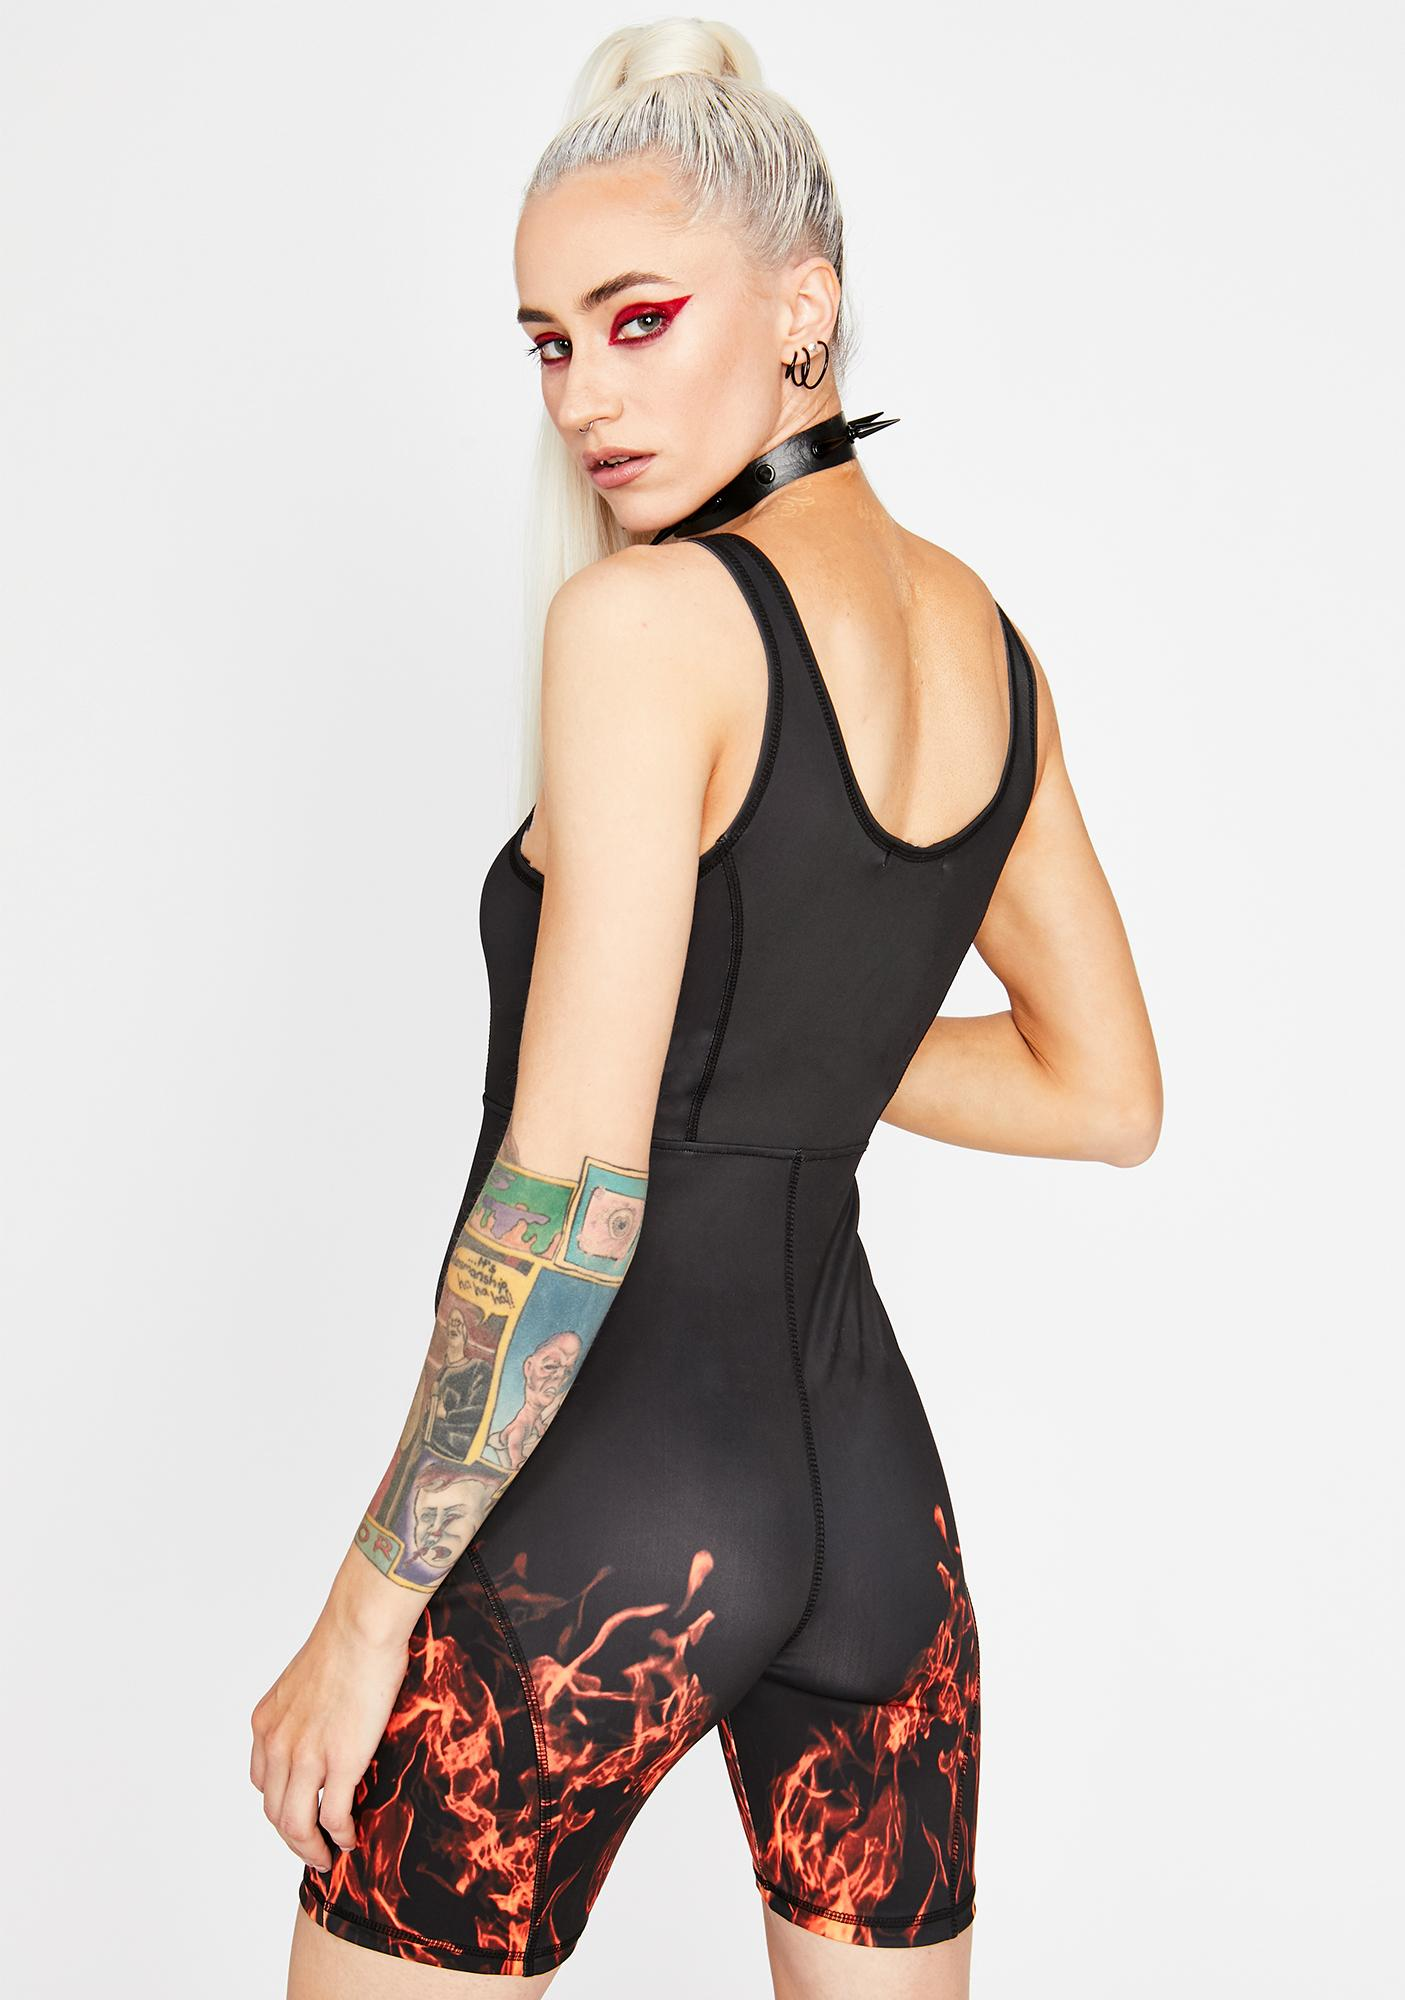 HOROSCOPEZ Blazing Glory Cut-Out Romper